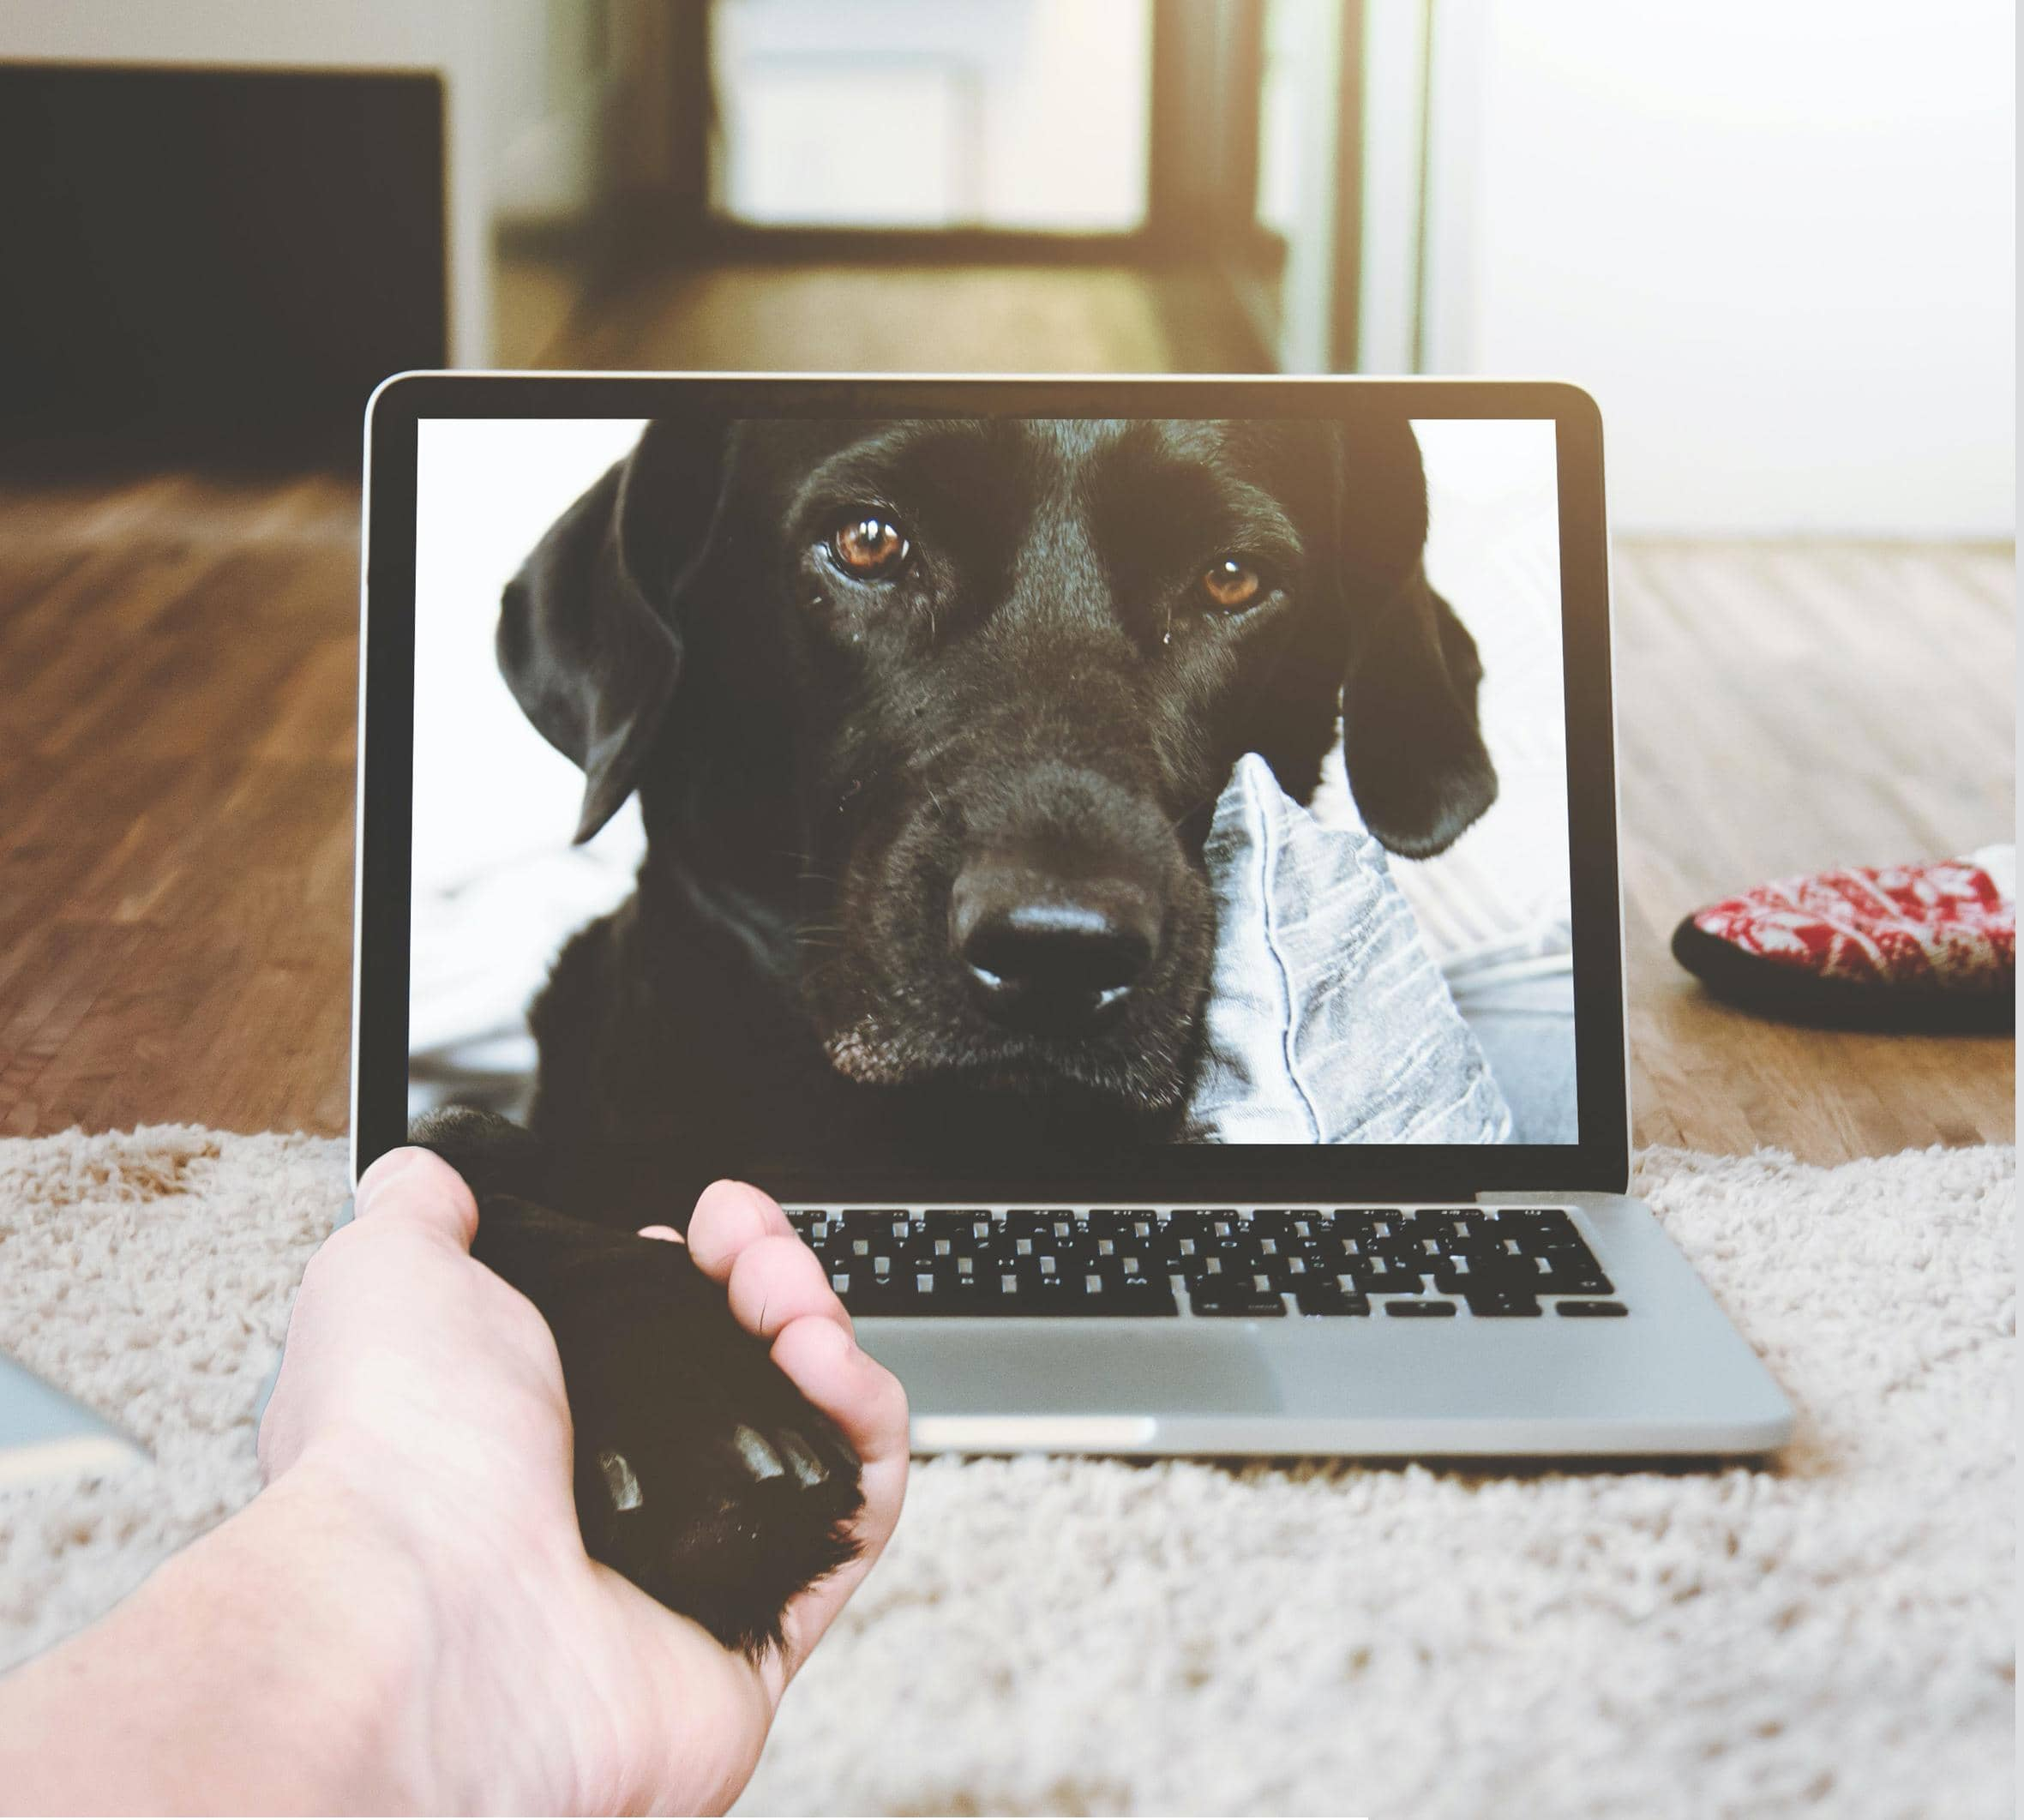 VIRTUAL TRAINING CAN BE GOOD FOR TRAINERS, OWNERS AND DOGS